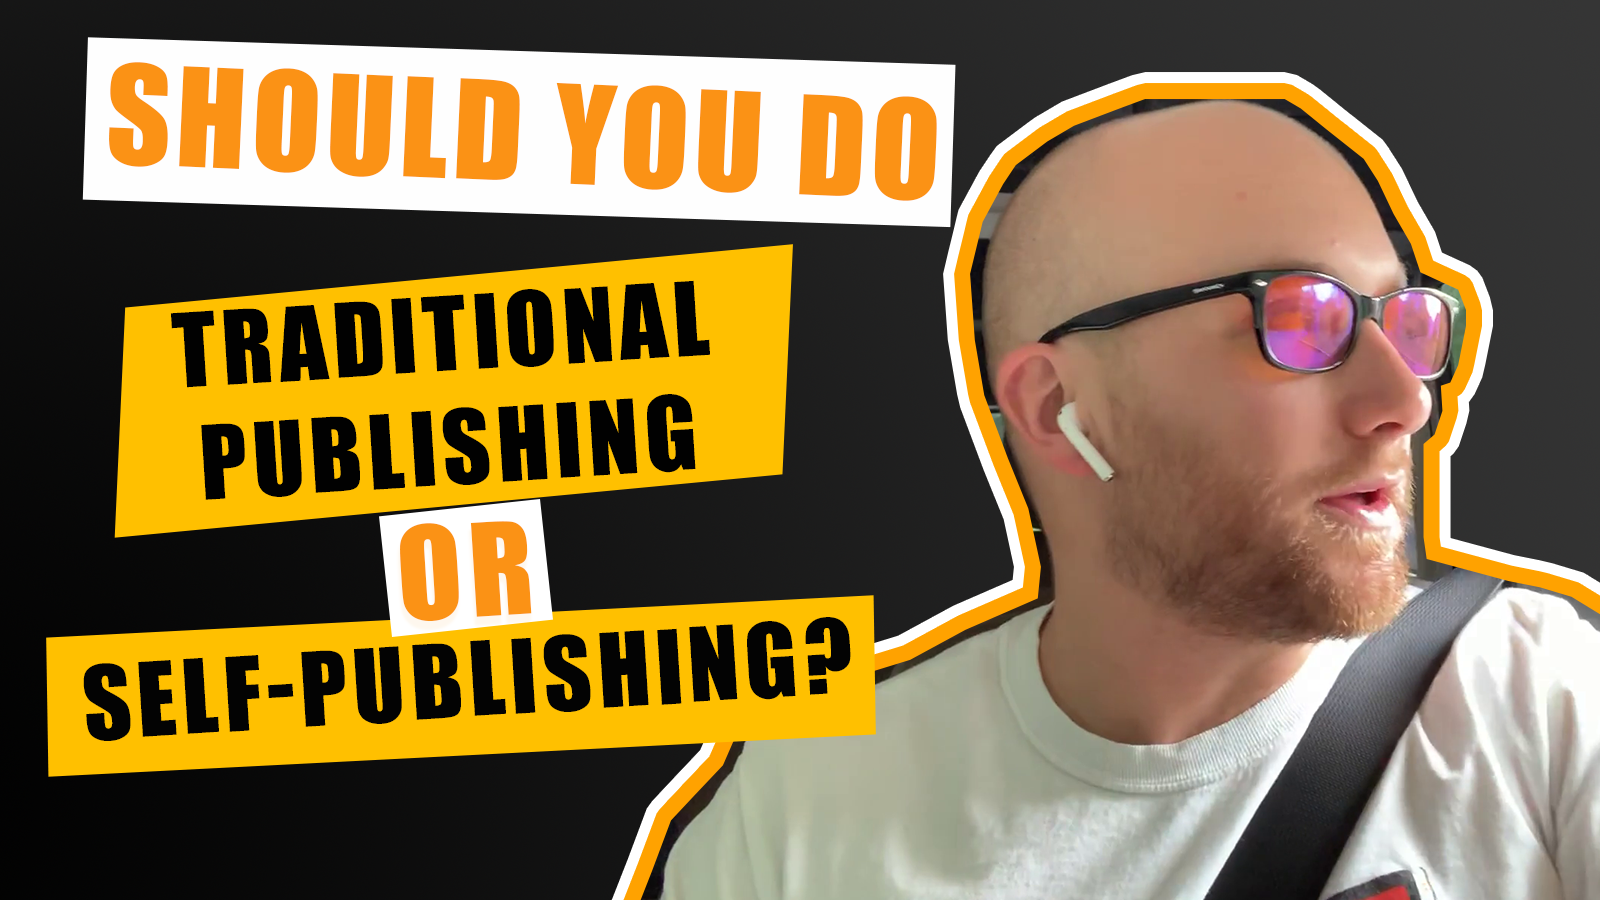 Should You Do Traditional Publishing Or Self-Publishing?